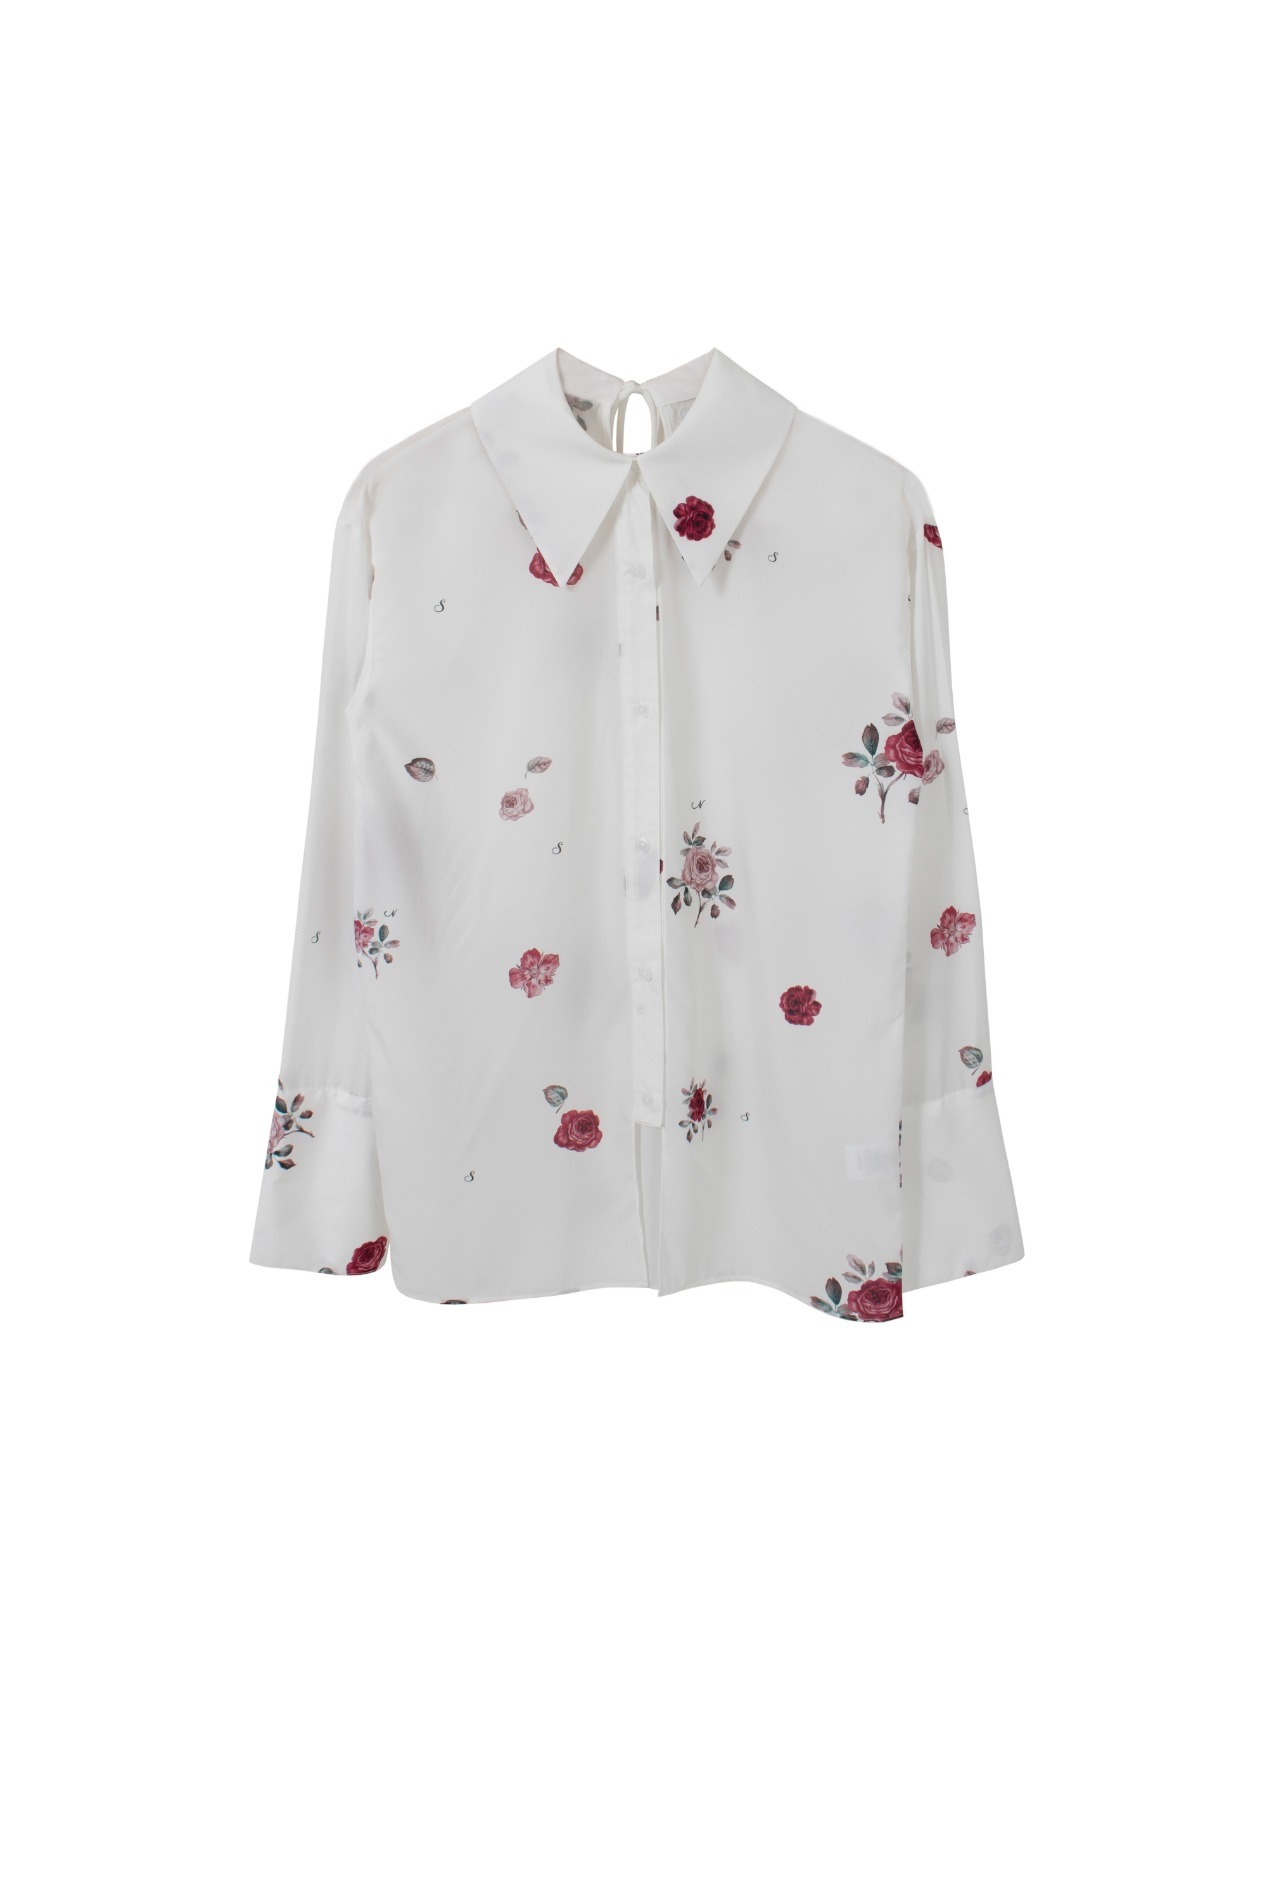 Rose sauvage blouse (white)